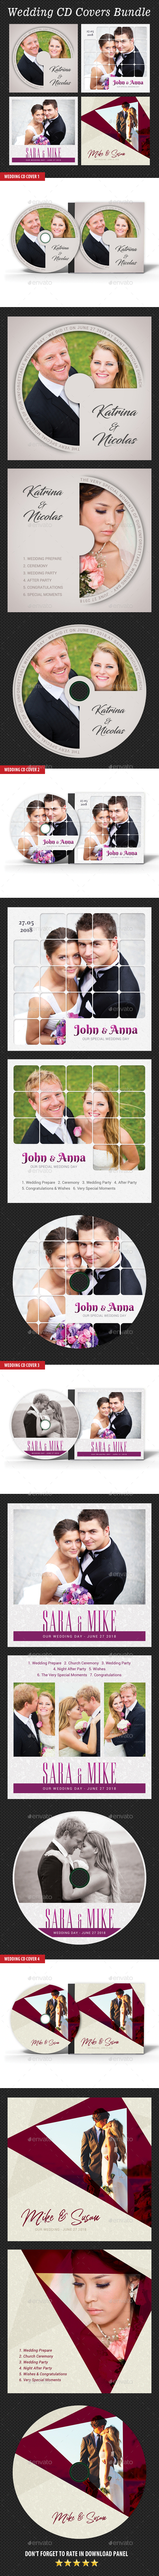 4 in 1 Wedding CD Cover Templates Bundle V3 - CD & DVD Artwork Print Templates